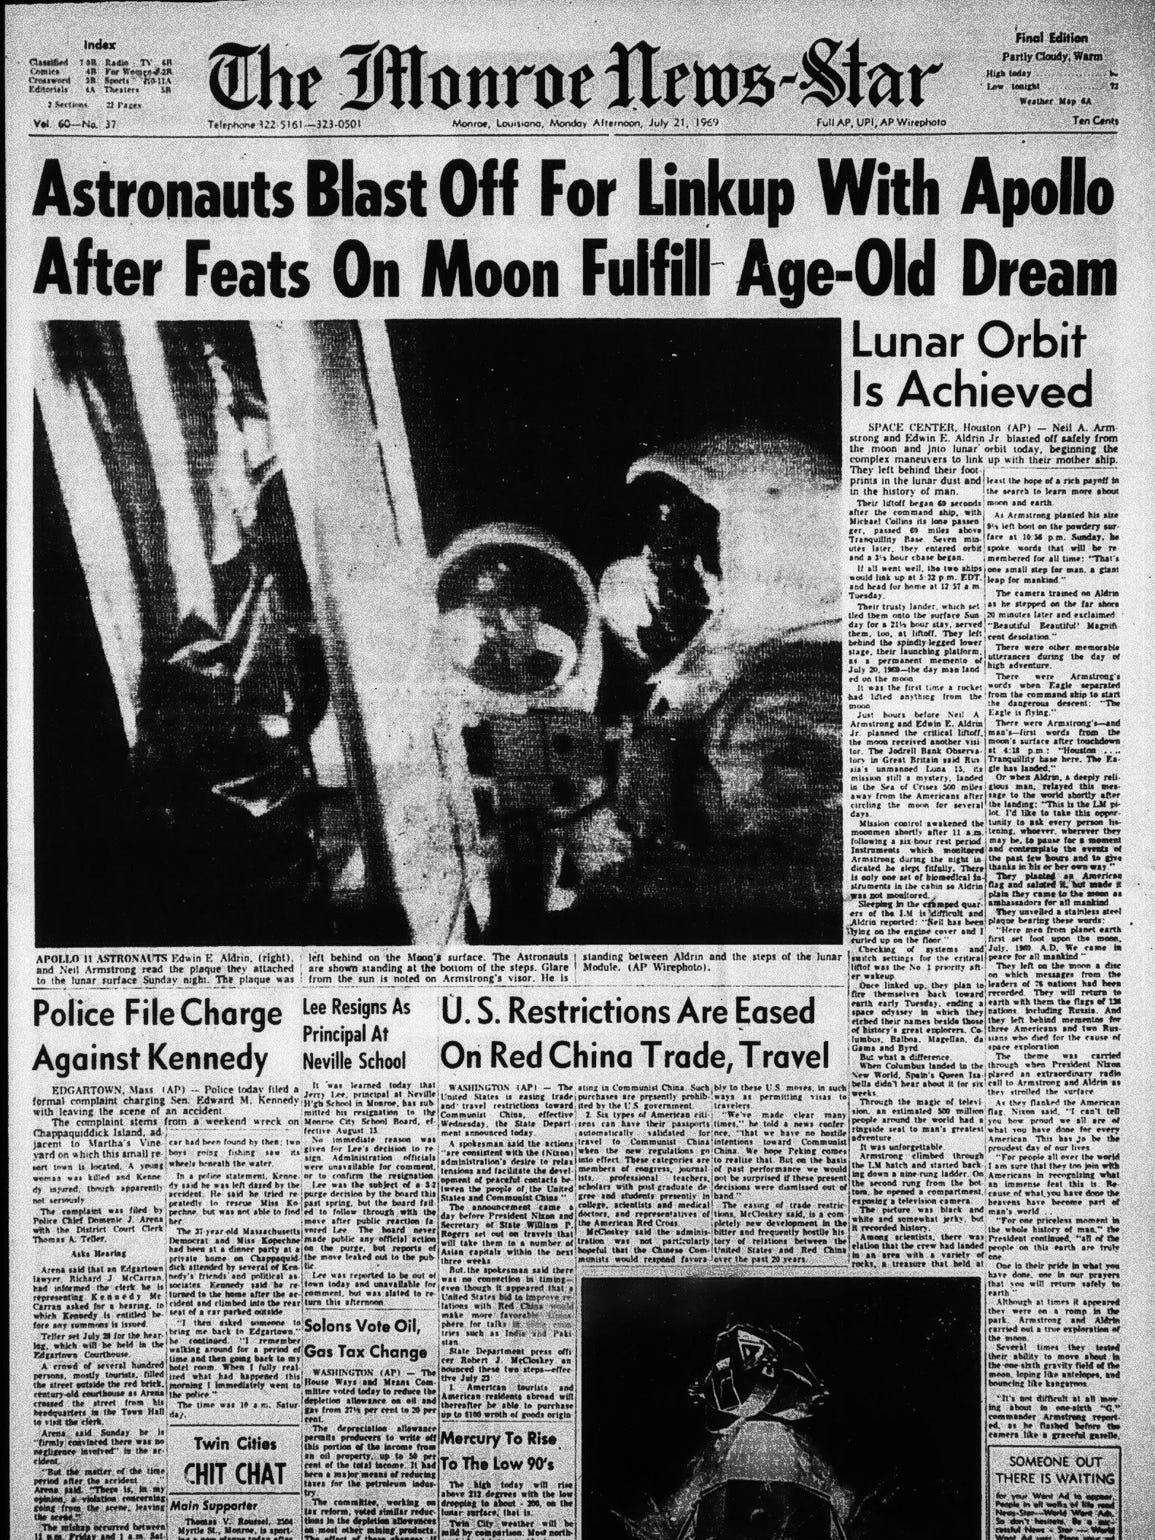 Vintage front page of The News-Star